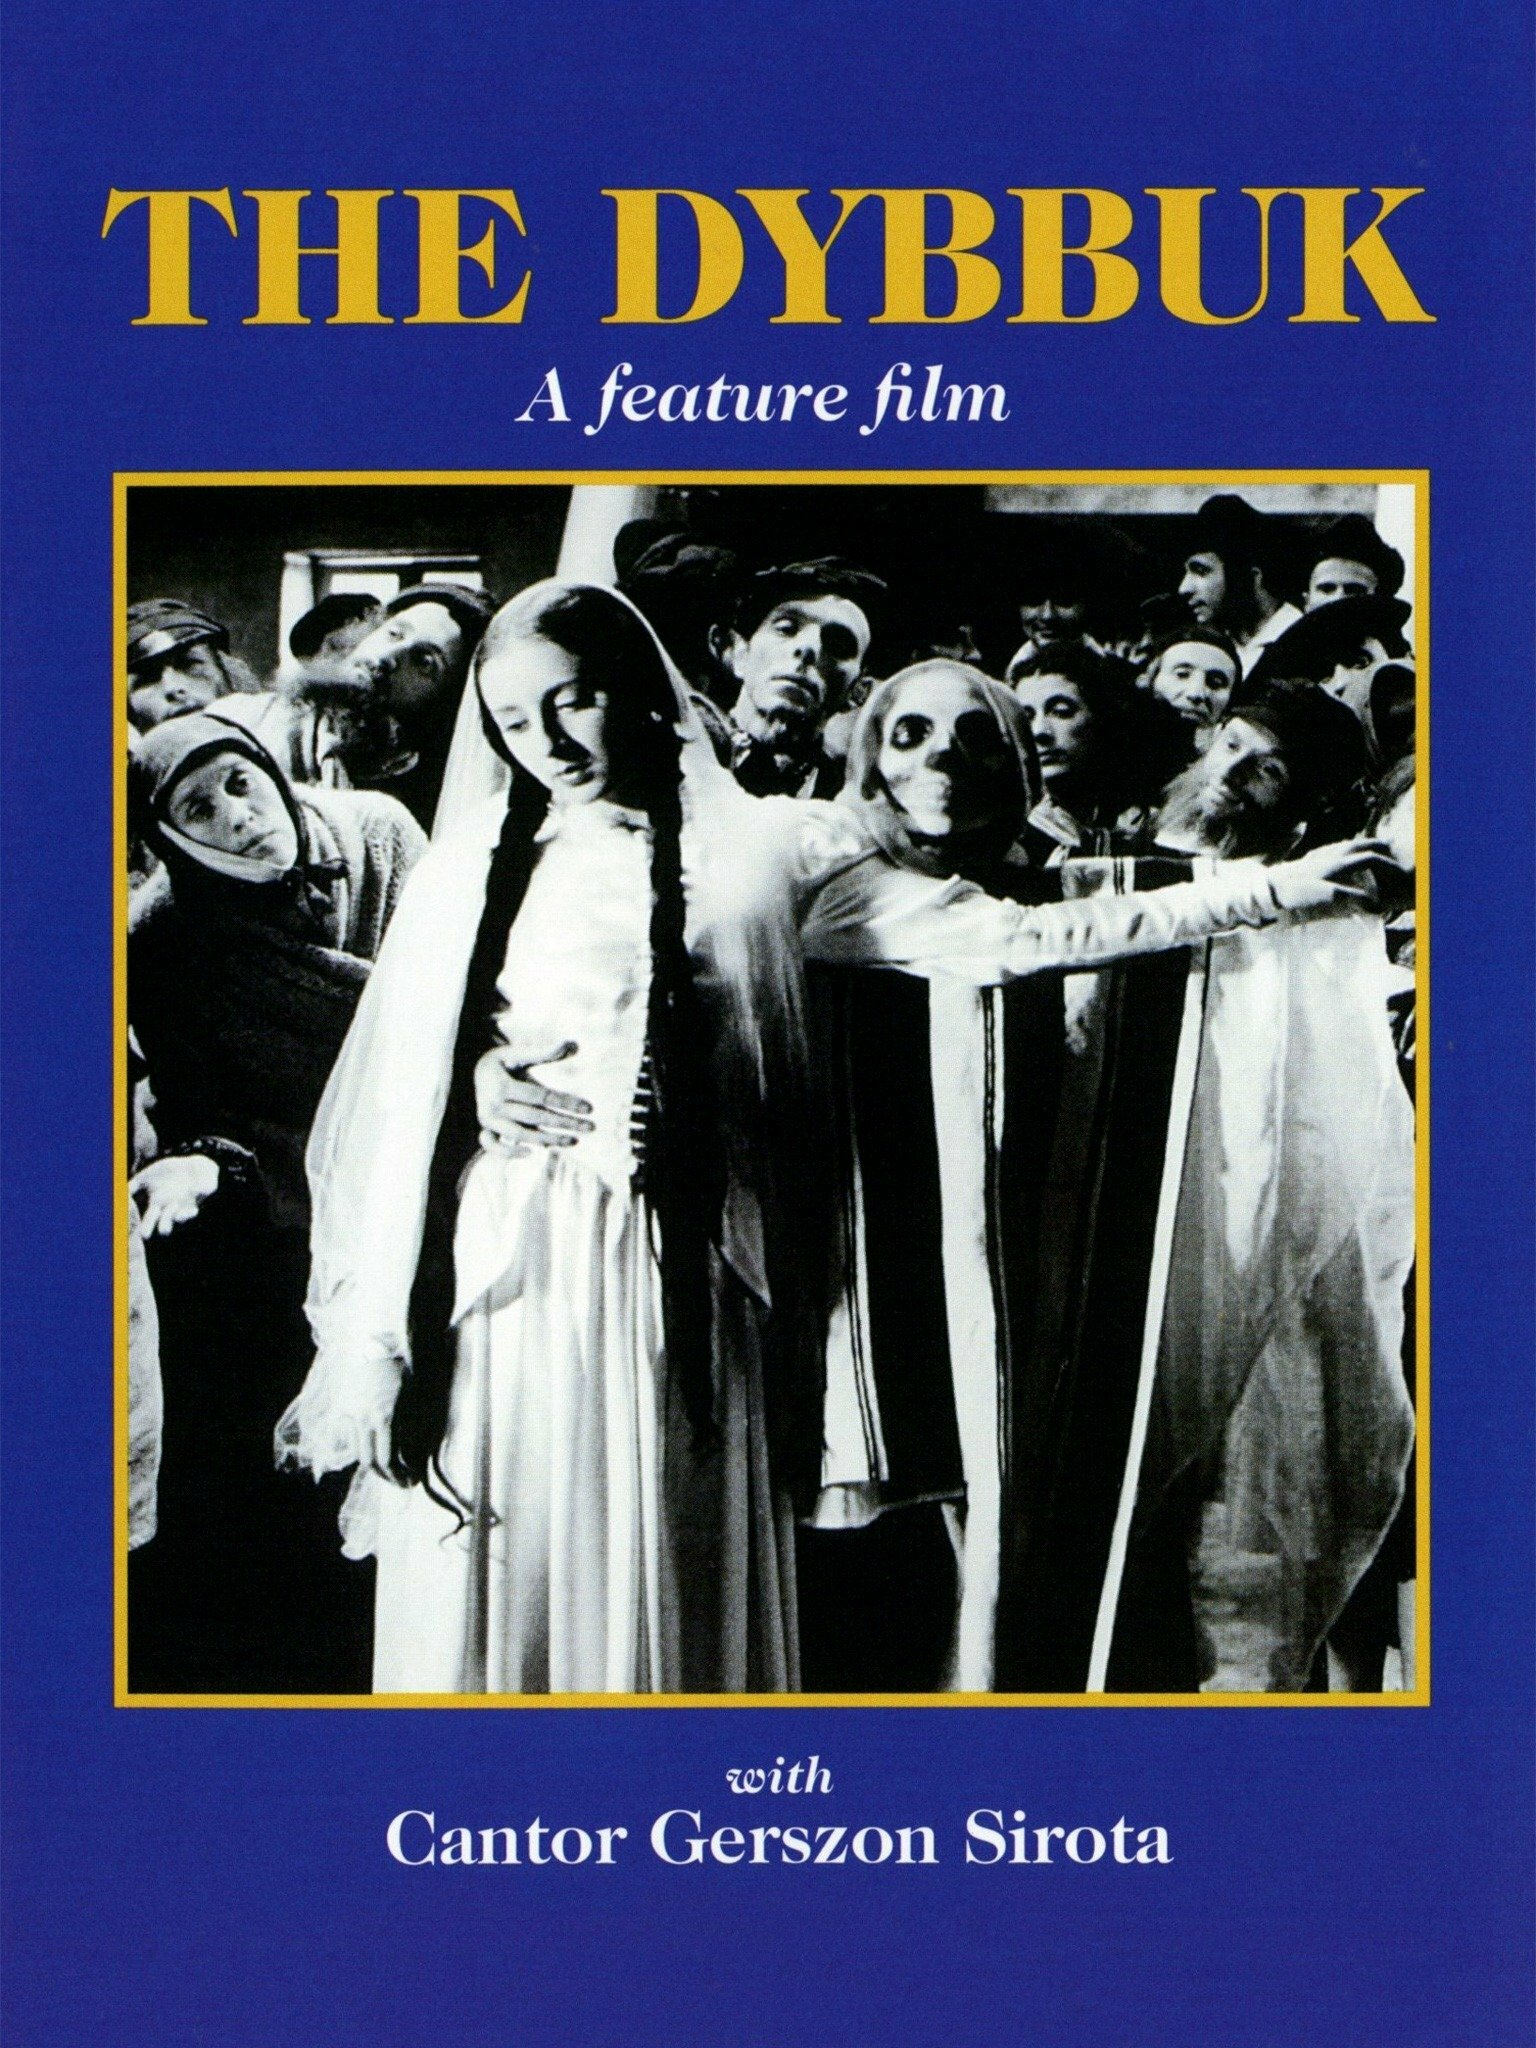 """<p>Cover image for the <span class=""""caps"""">VHS</span> / <span class=""""caps"""">DVD</span> re-release of the <span class=""""numbers"""">1937</span> film version of <em>The Dybbuk</em>, featuring the Dance of Death&nbsp;scene.</p>"""